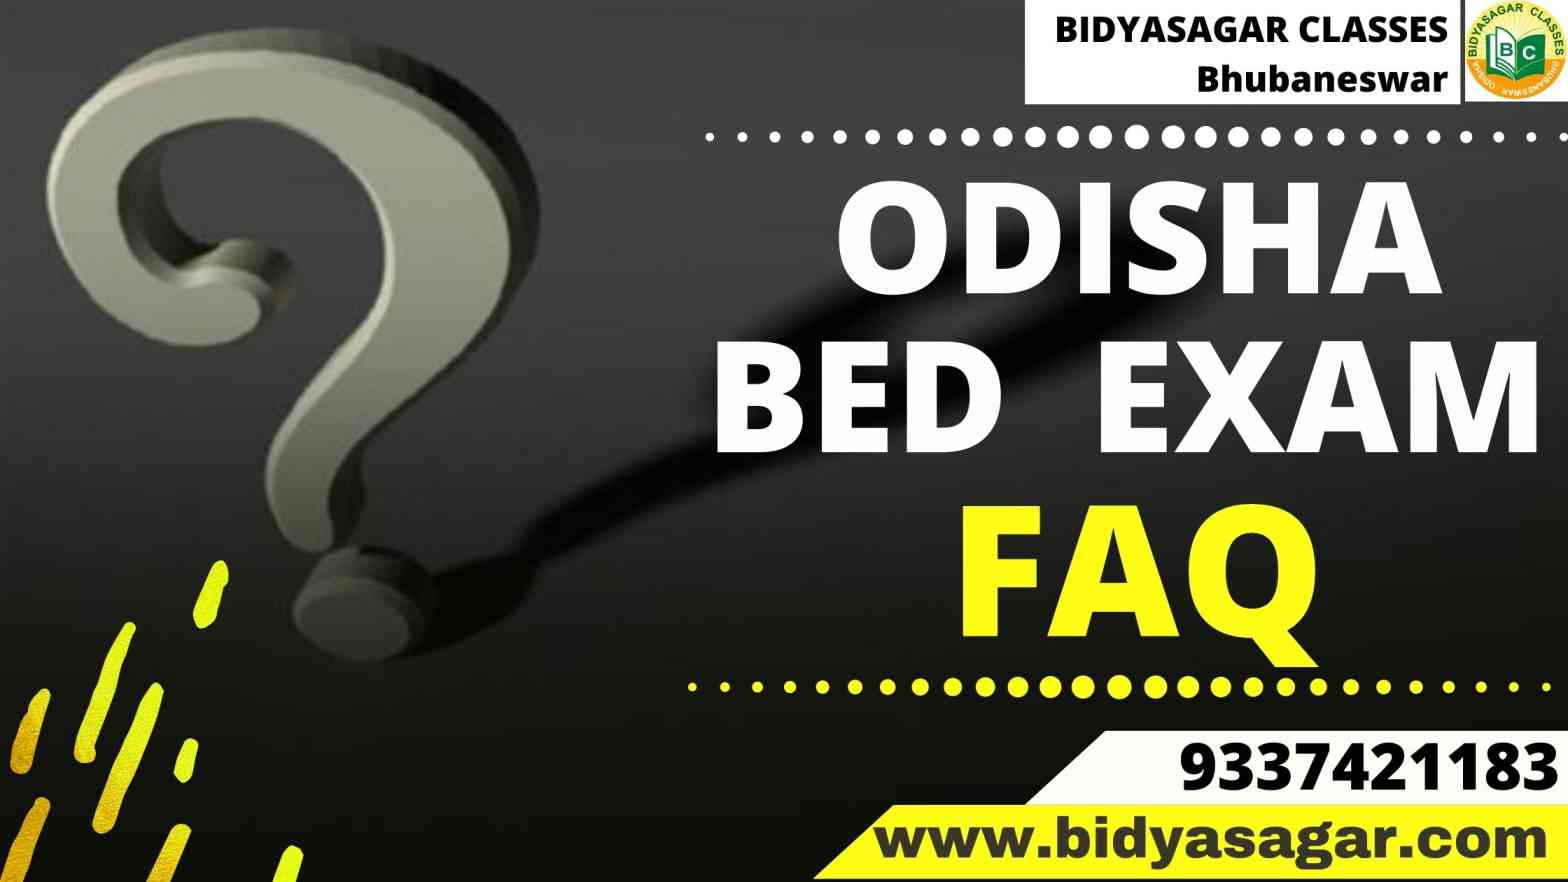 Odisha State B.Ed Entrance 2021 Exam FAQ